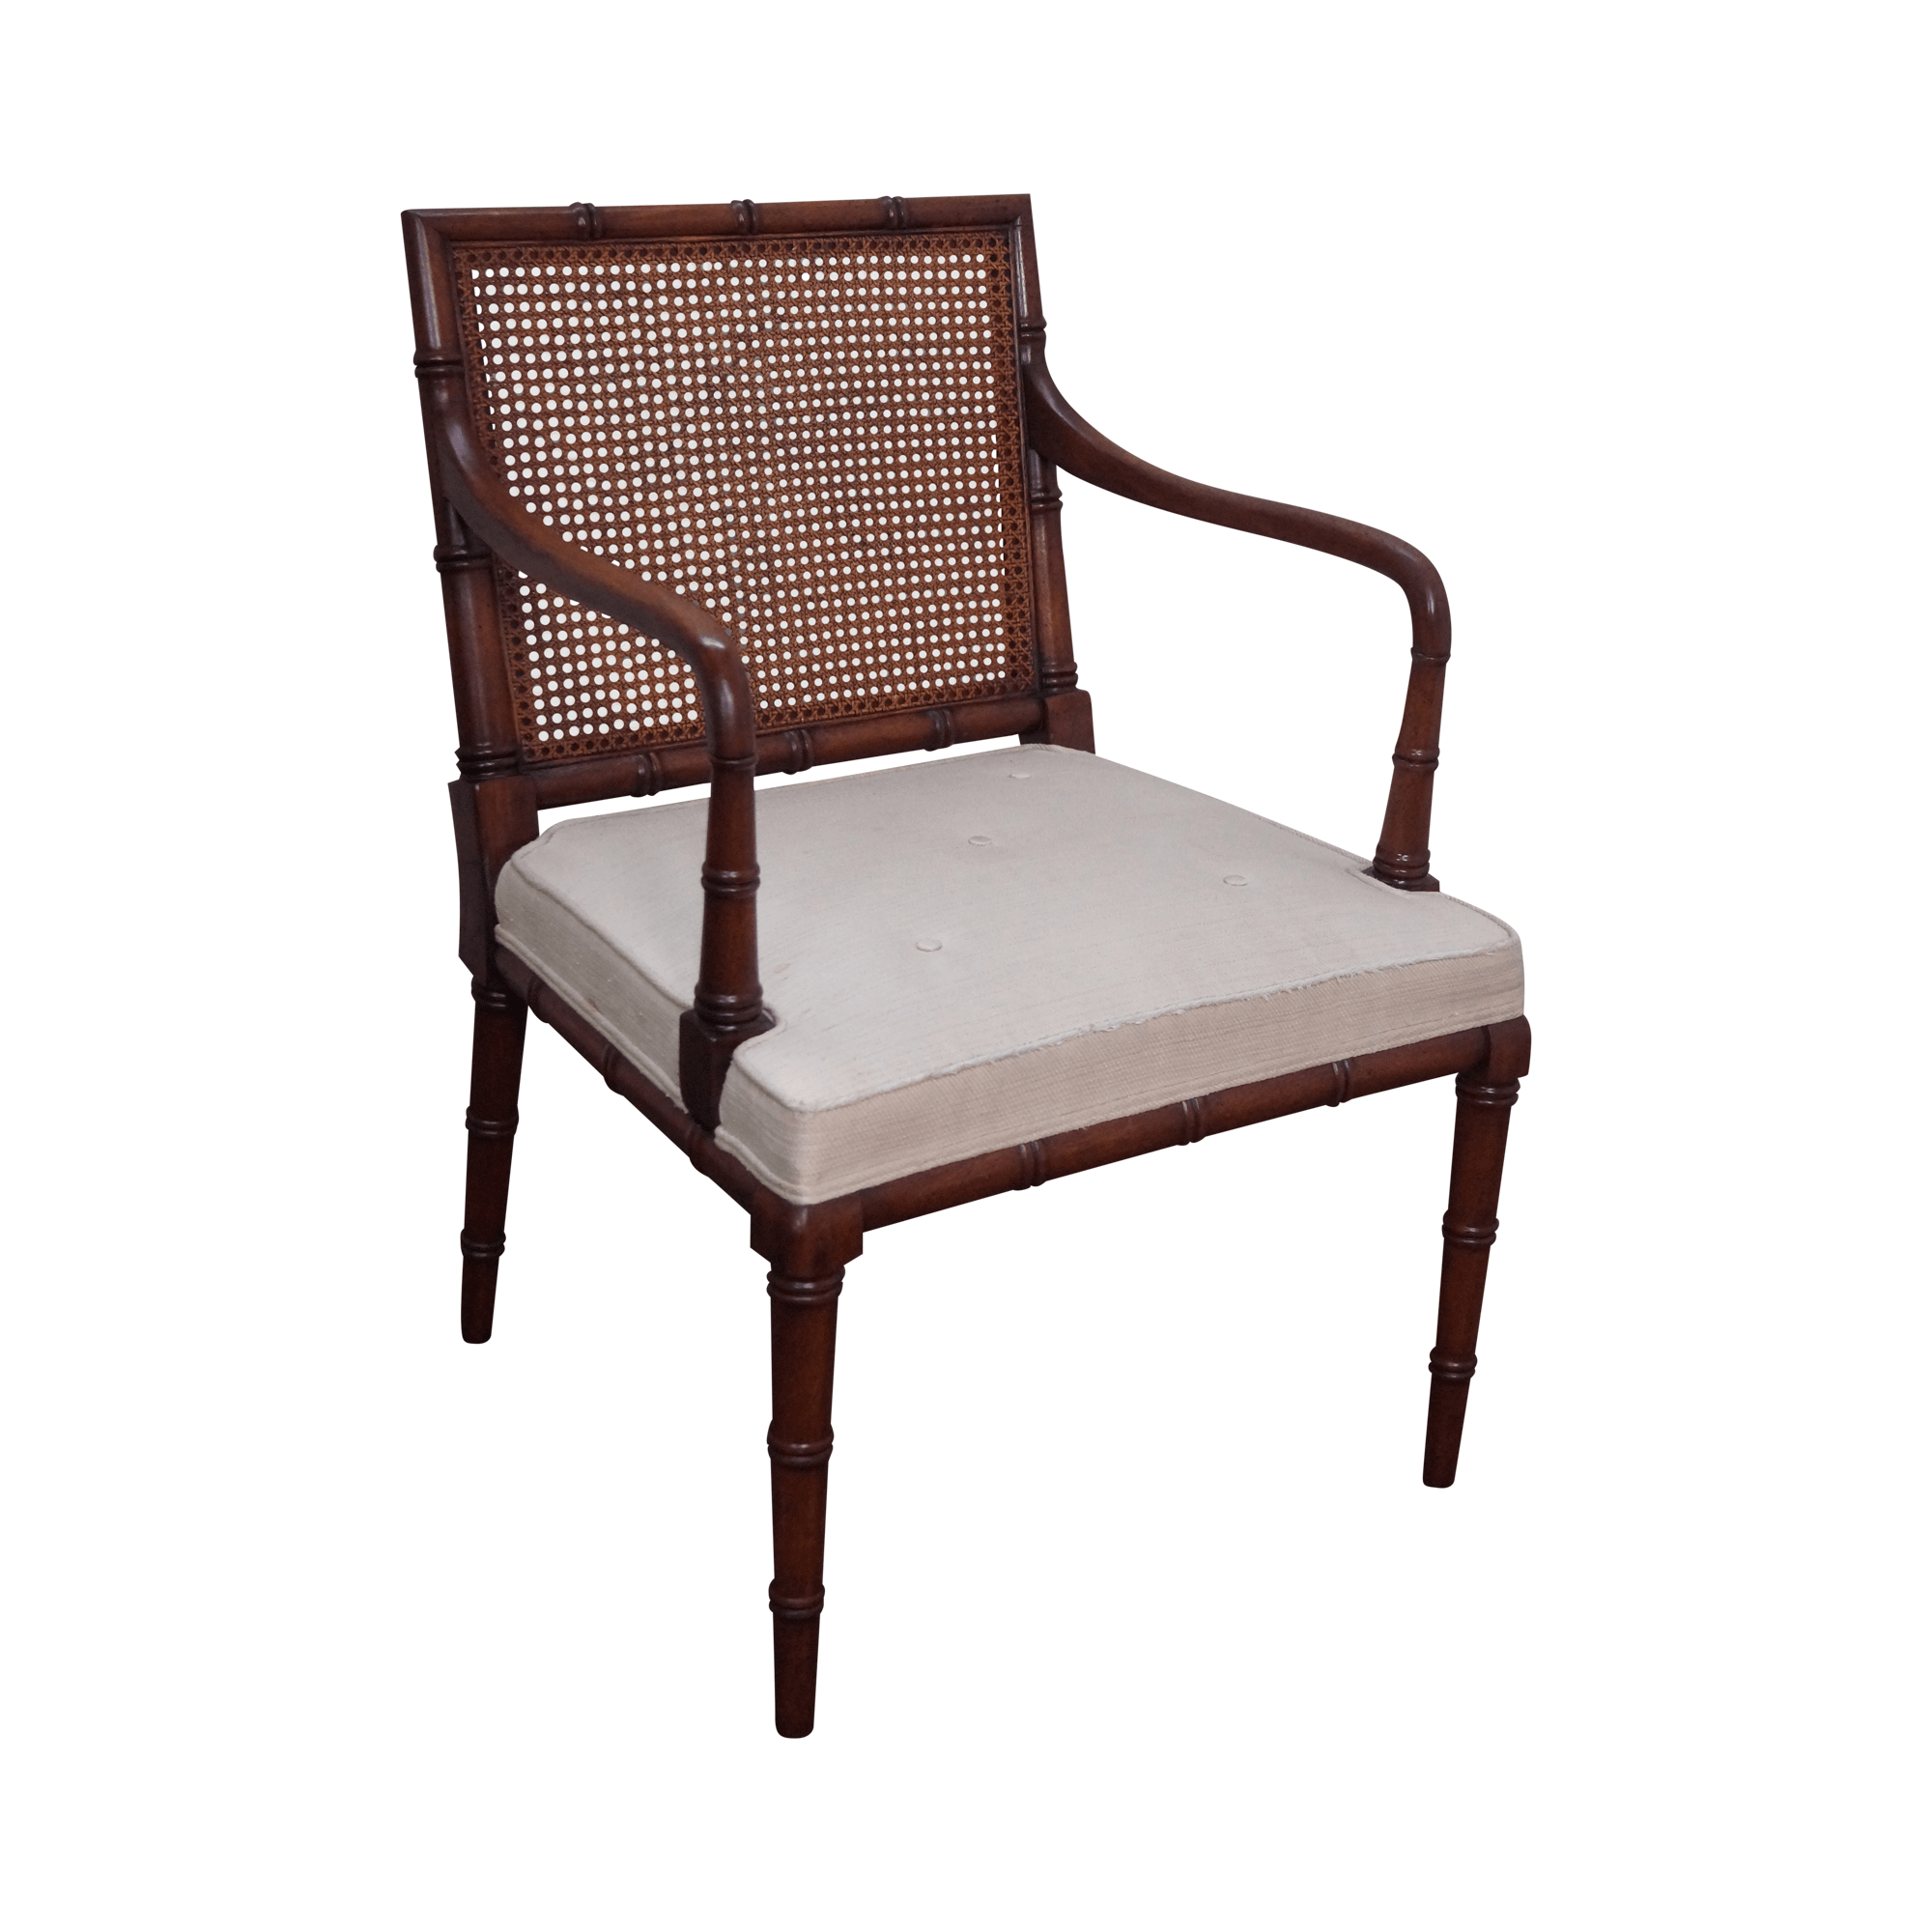 bamboo cane back chairs stool chair nz solid mahogany faux arm chairish